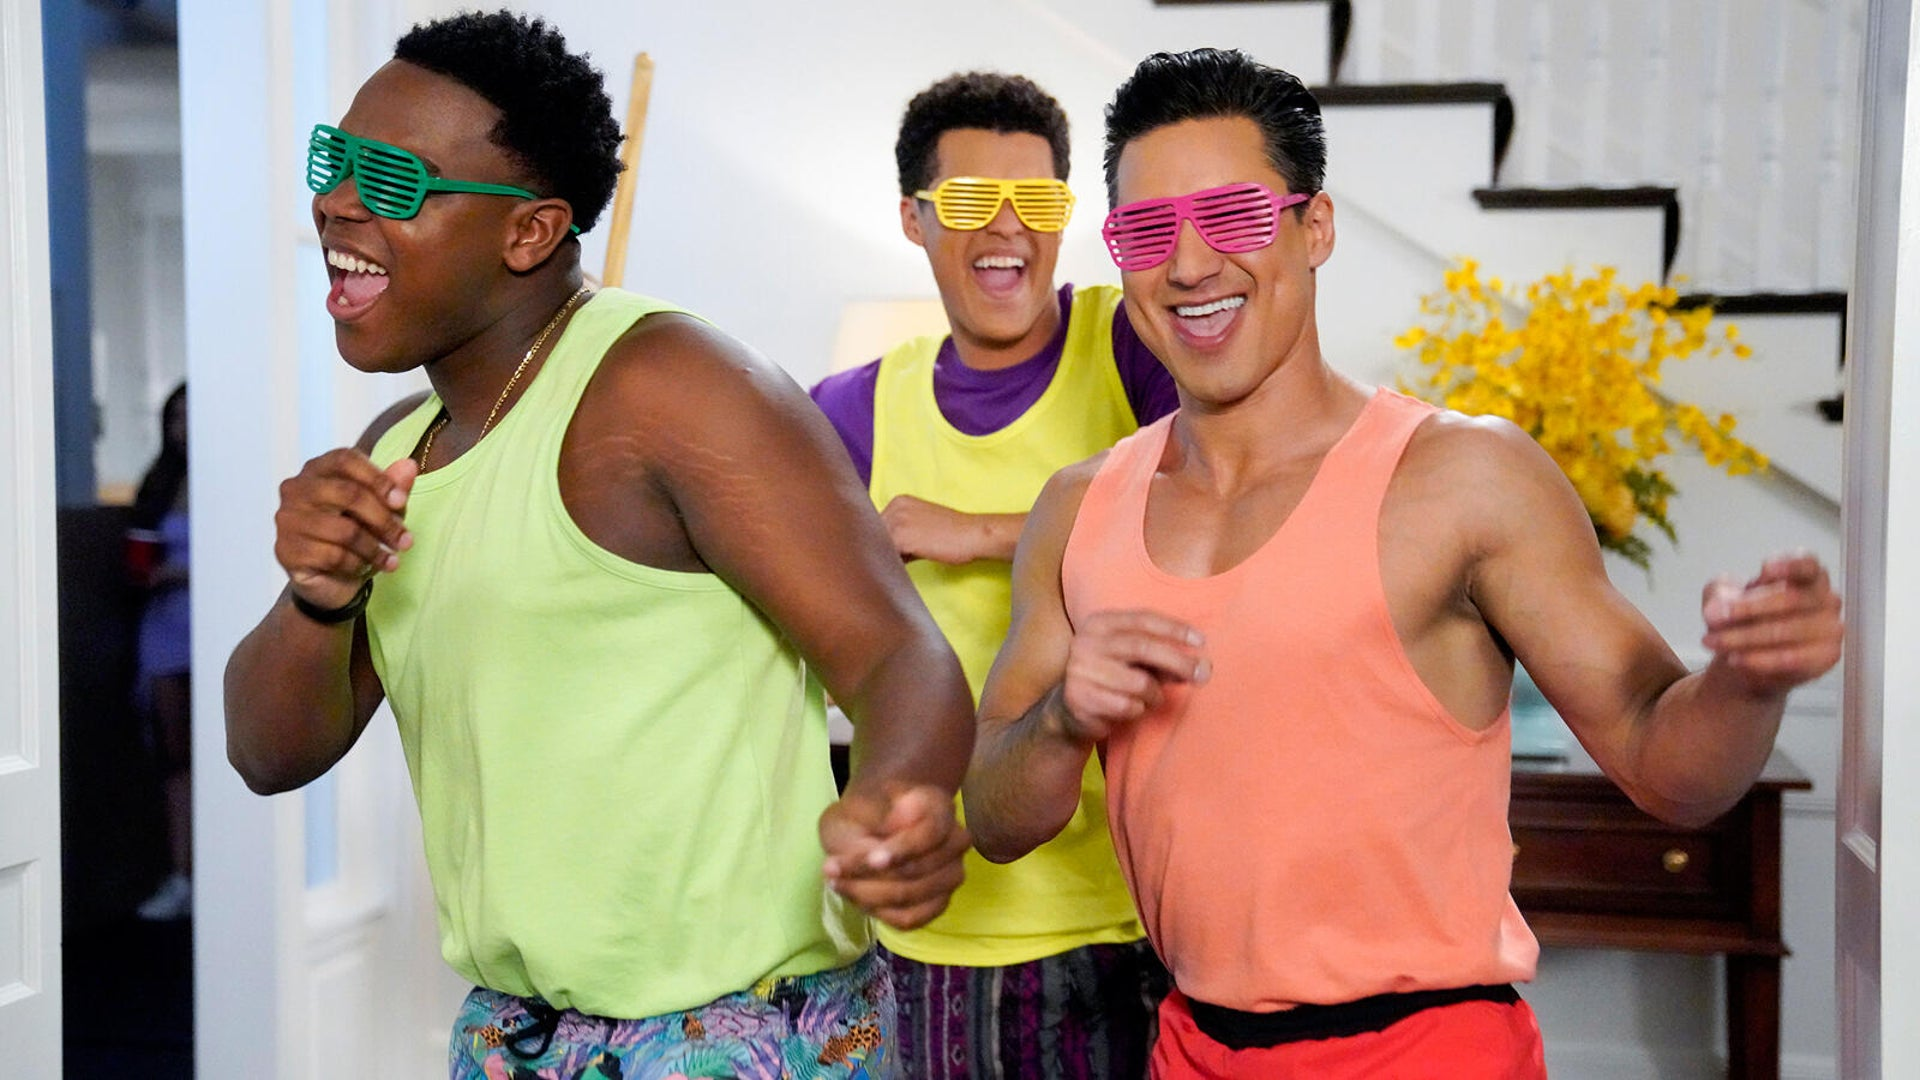 Dexter Darden, DeShawn Cavanaugh, and Mario Lopez, Saved by the Bell